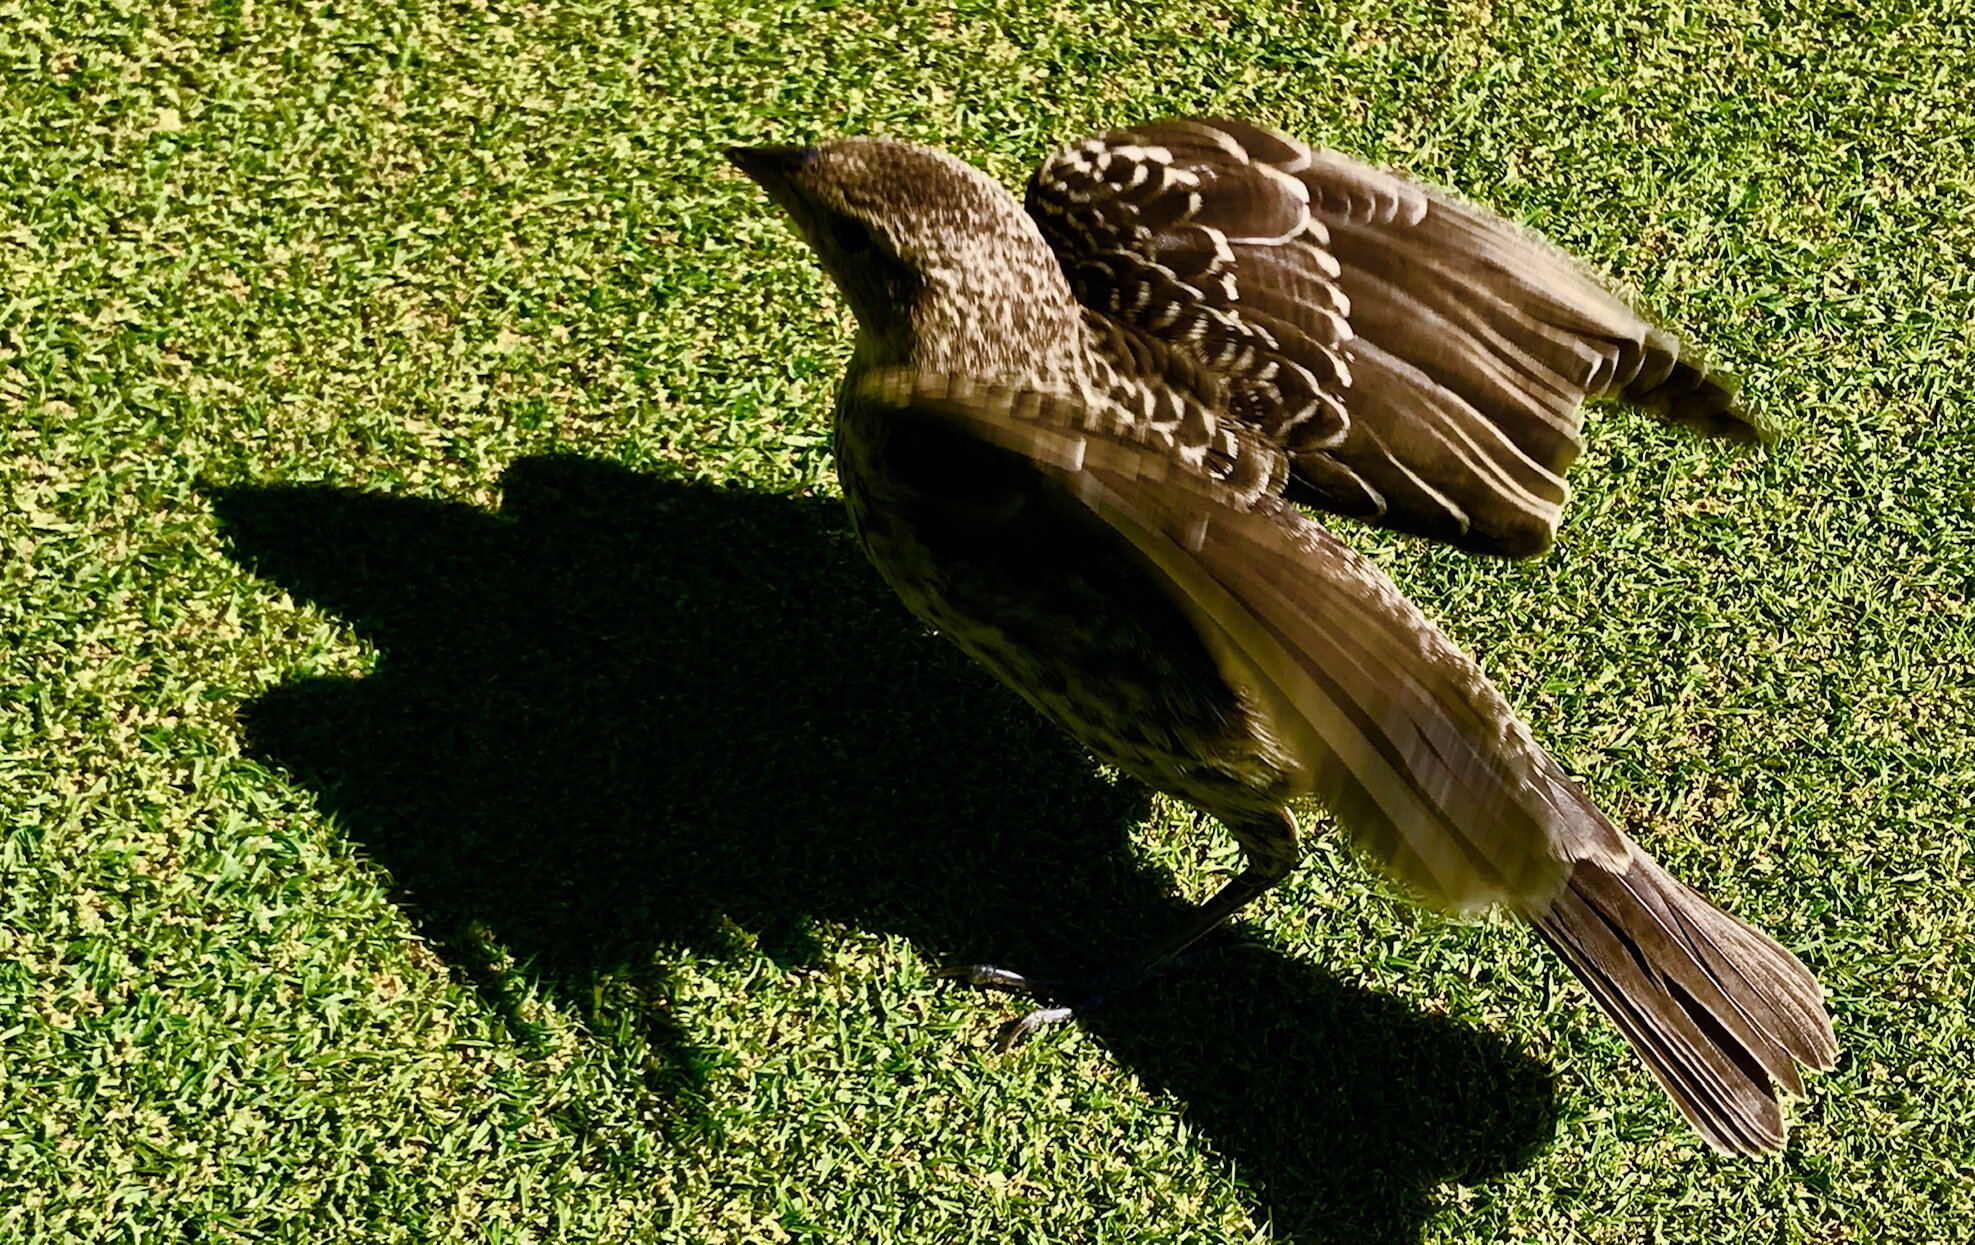 This guy swooped down right next to me to help me line up my putt. Can't remember if I made it or not.